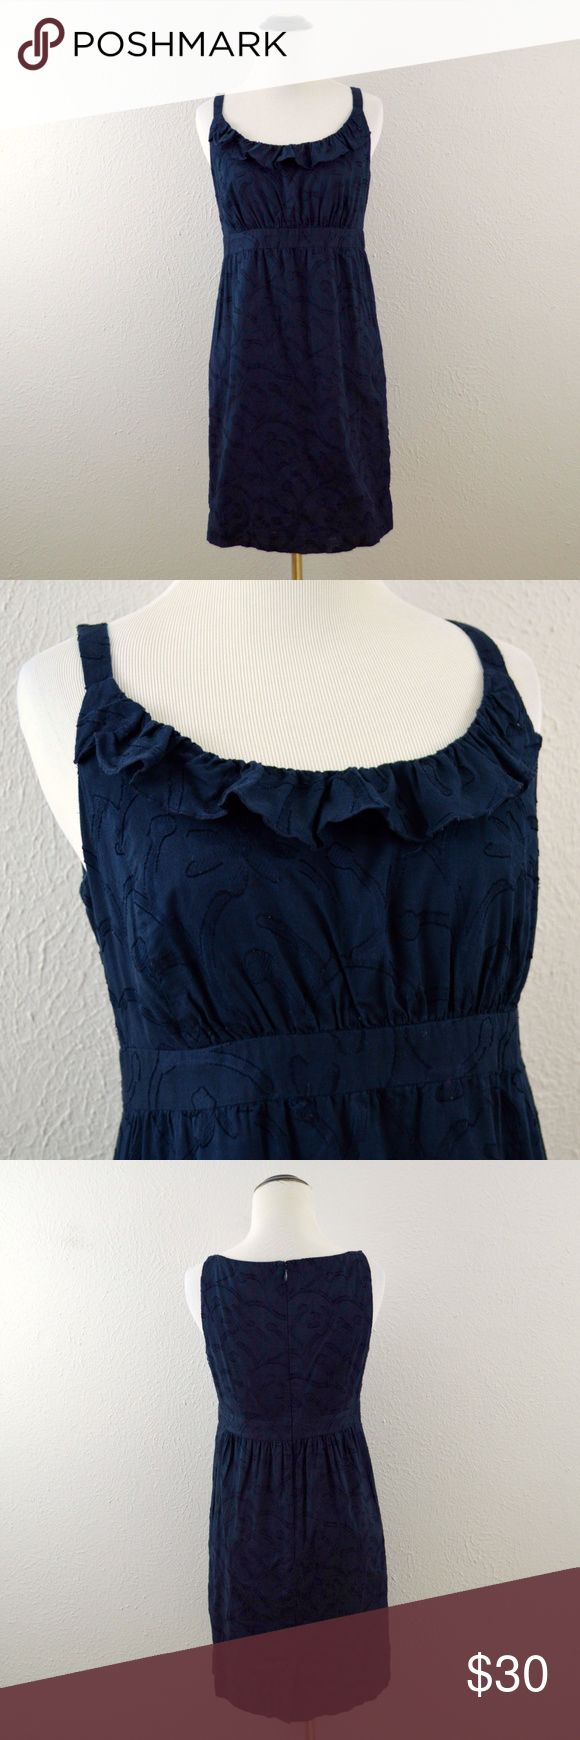 LOFT Navy Blue Dress Navy blue sleeveless dress by Ann Taylor LOFT. Has a floral embroidered detail throughout the dress. In great condition!  | Measurements | Size: 4 Petite All flat lay measurements are provided in image above and are approximate.  | Materials | 100% cotton. Machine washable! LOFT Dresses Mini